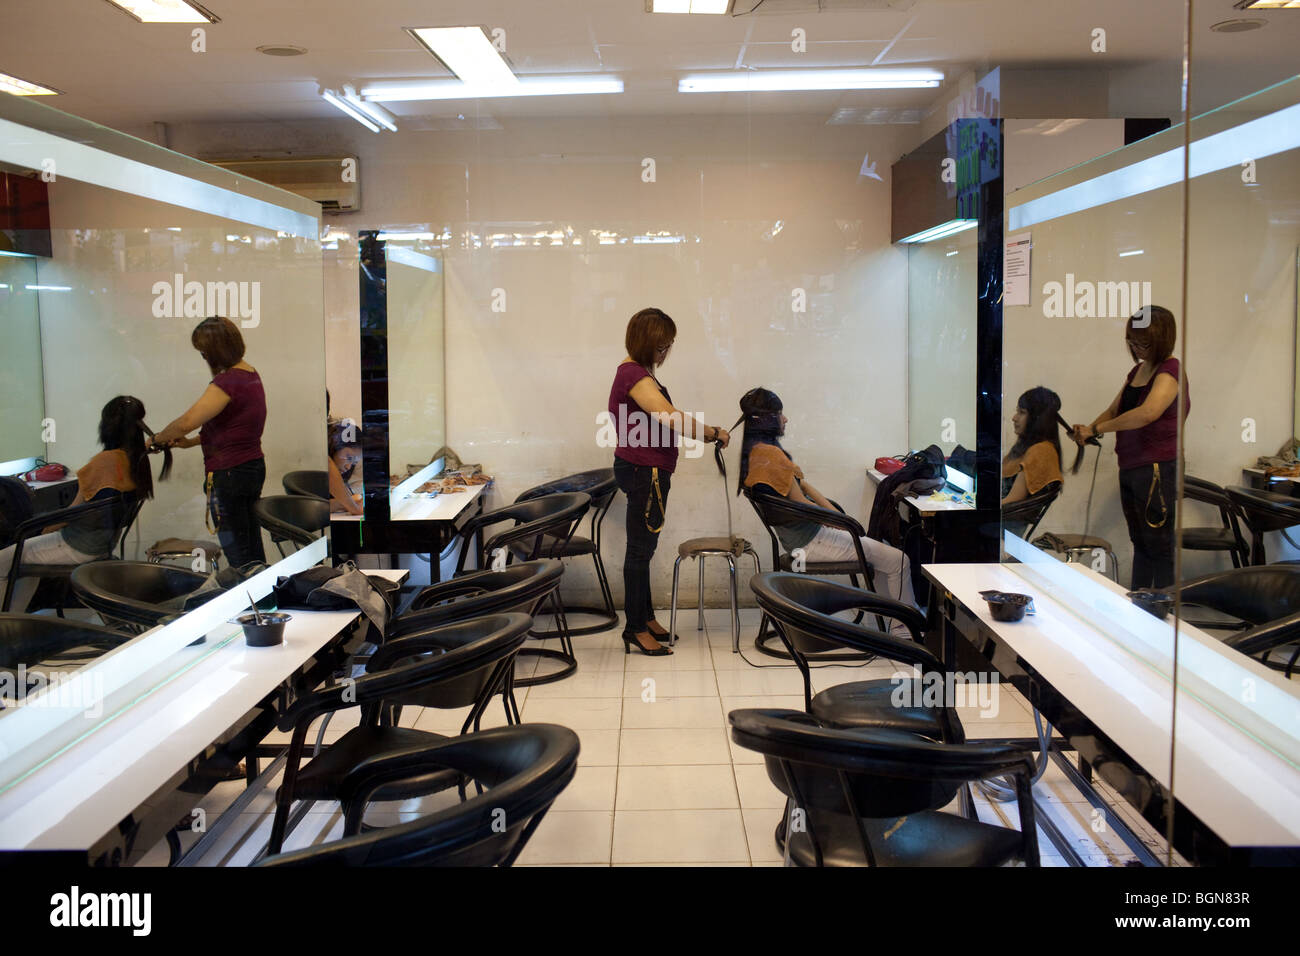 A hairdresser salon for women in a shopping mall in Jakarta, Java, Indonesia - Stock Image